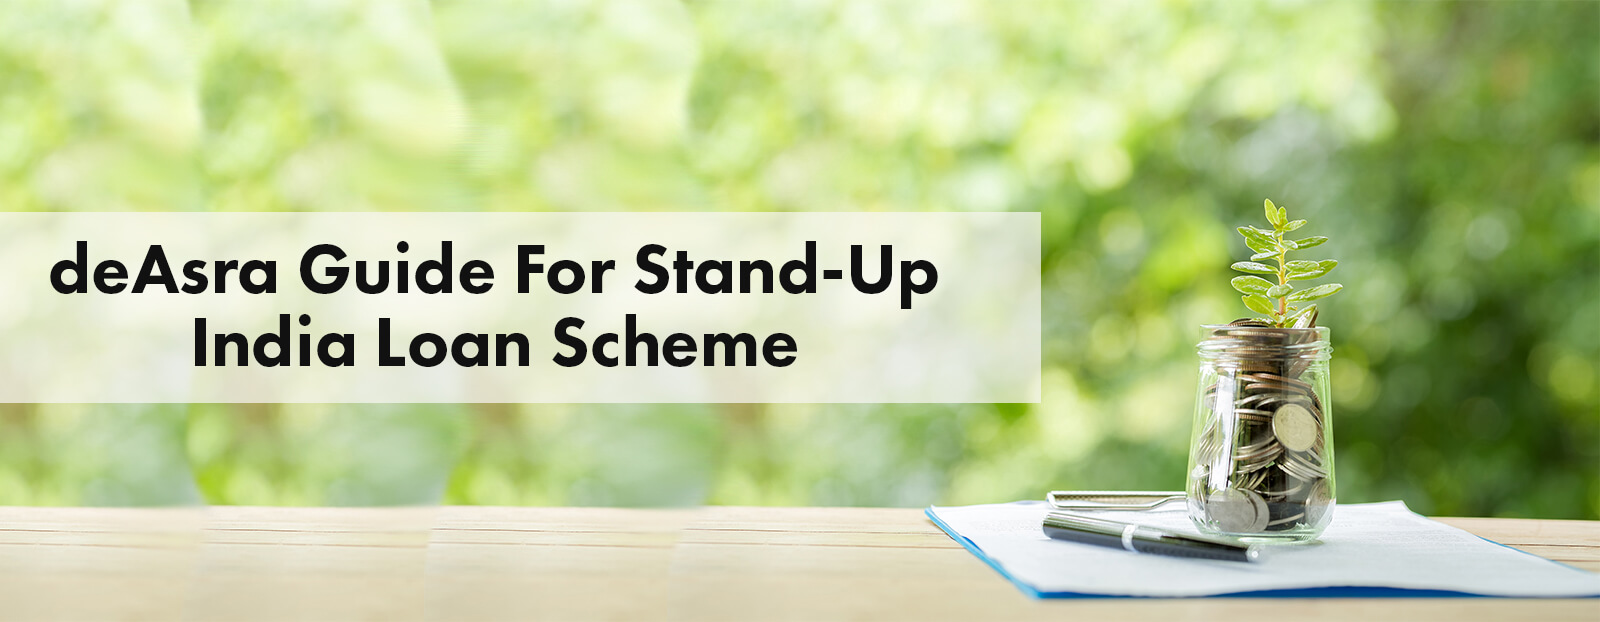 deAsra Guide For Stand-Up India Loan Scheme